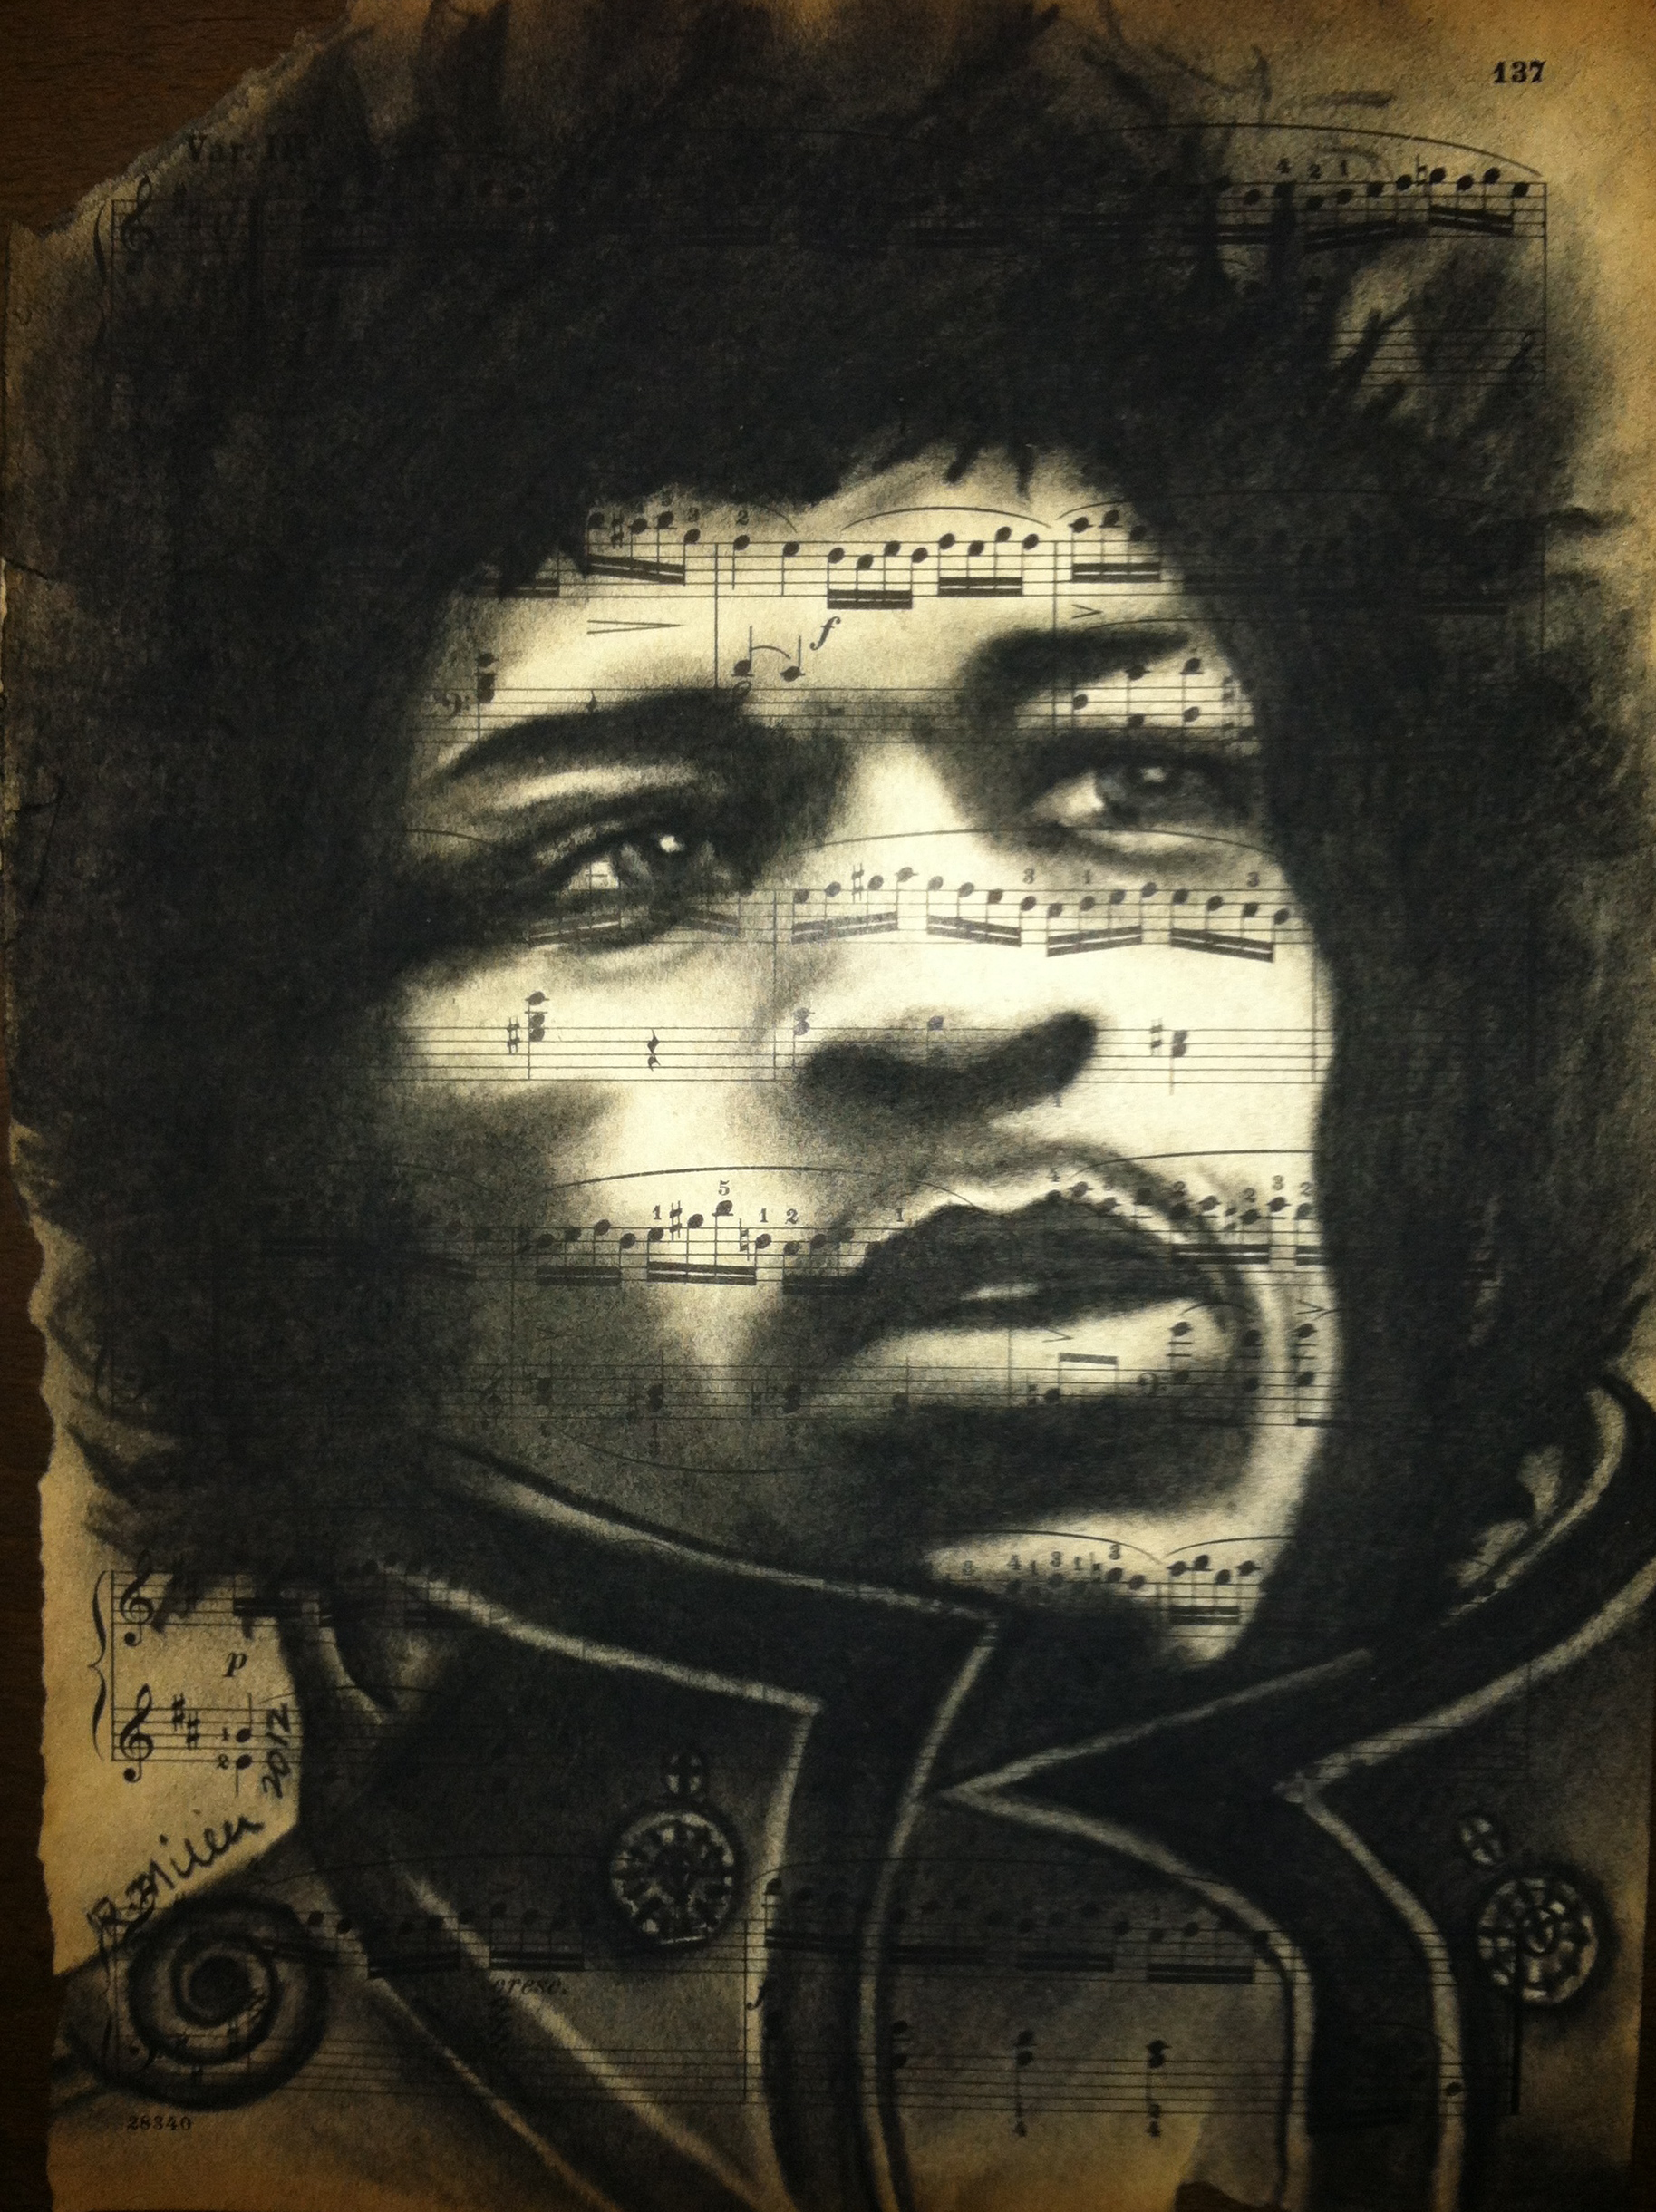 Jimi Hendrix, 2012   Charcoal on antique sheet music